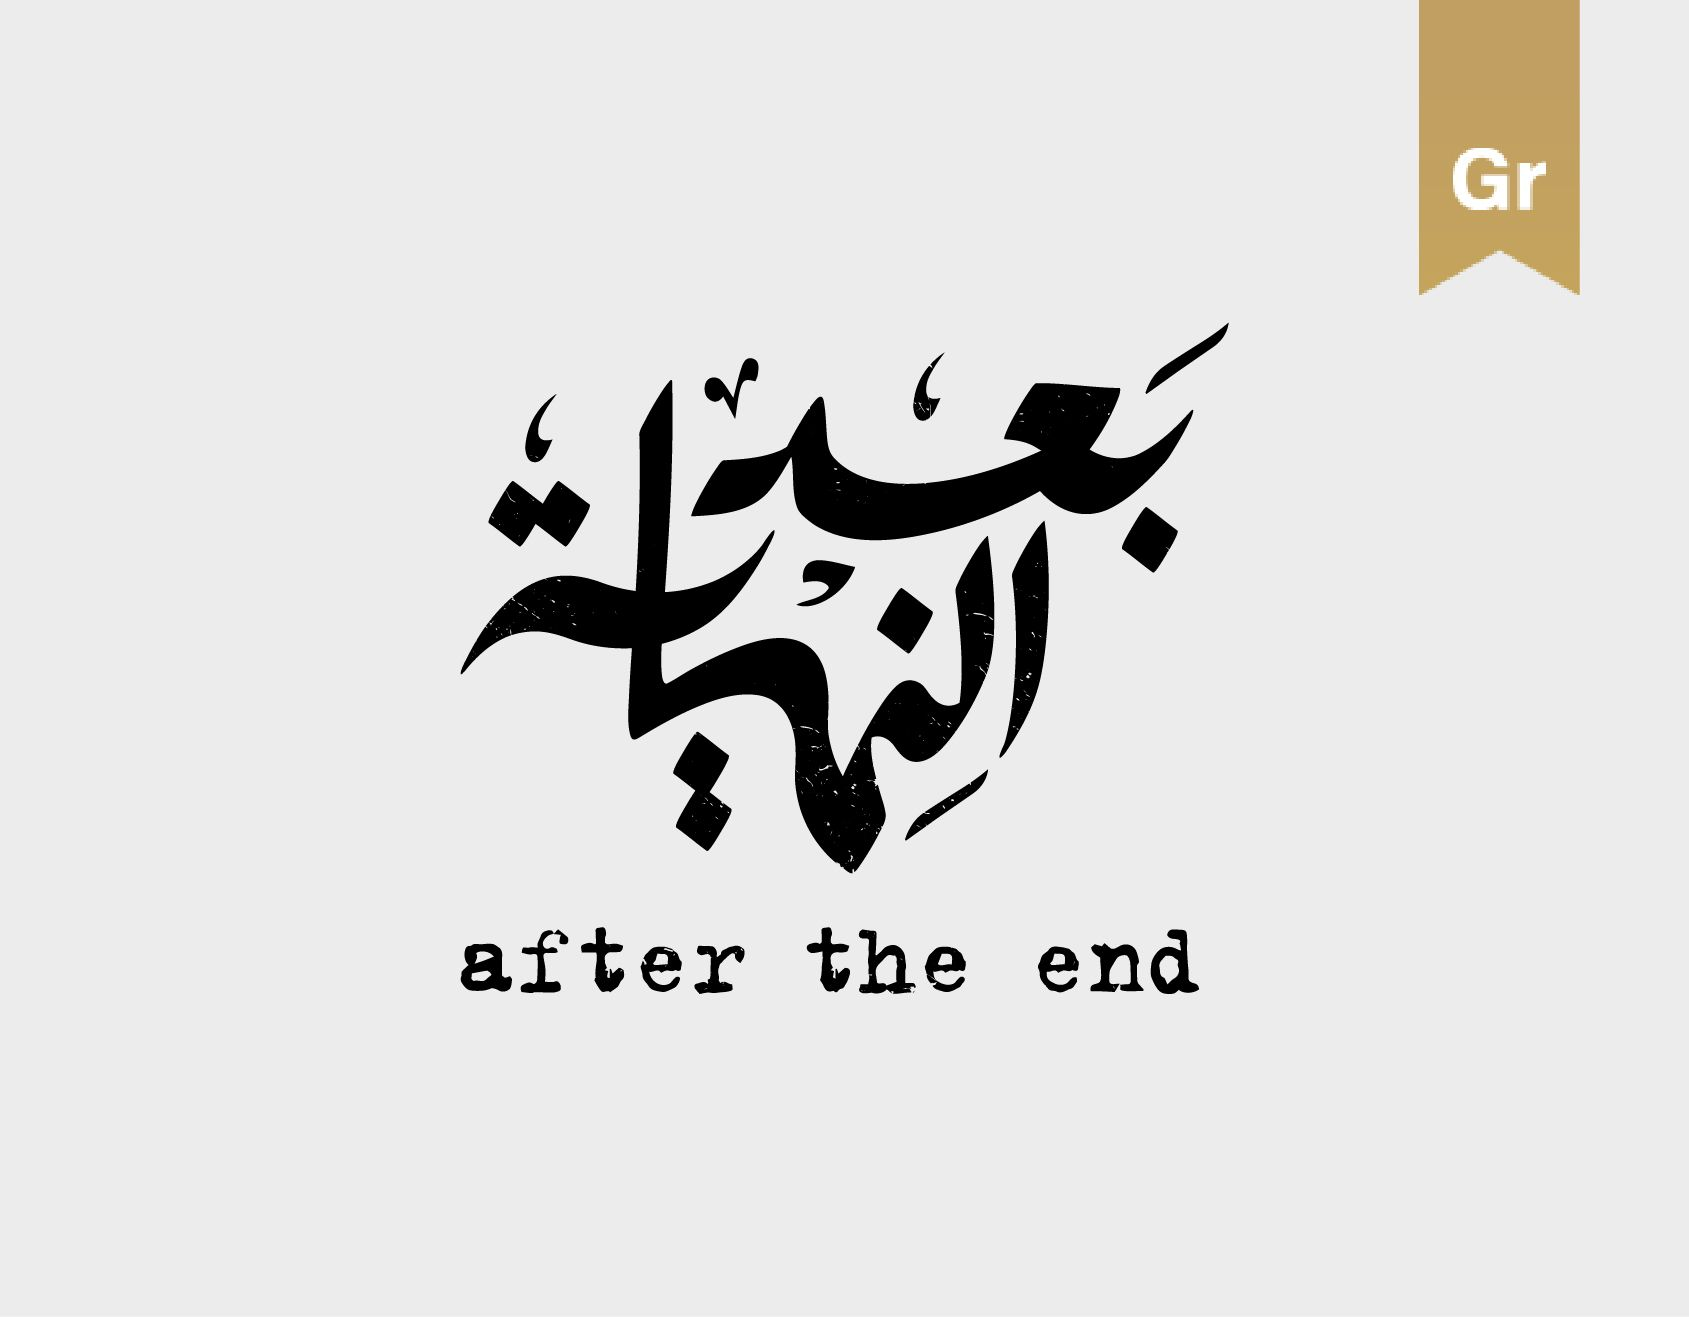 Check Out This Behance Project Arabic Typography 03 Https Www Behance Net Gallery 45425699 Arabic Typography Typography Calligraphy Design Circle Quotes